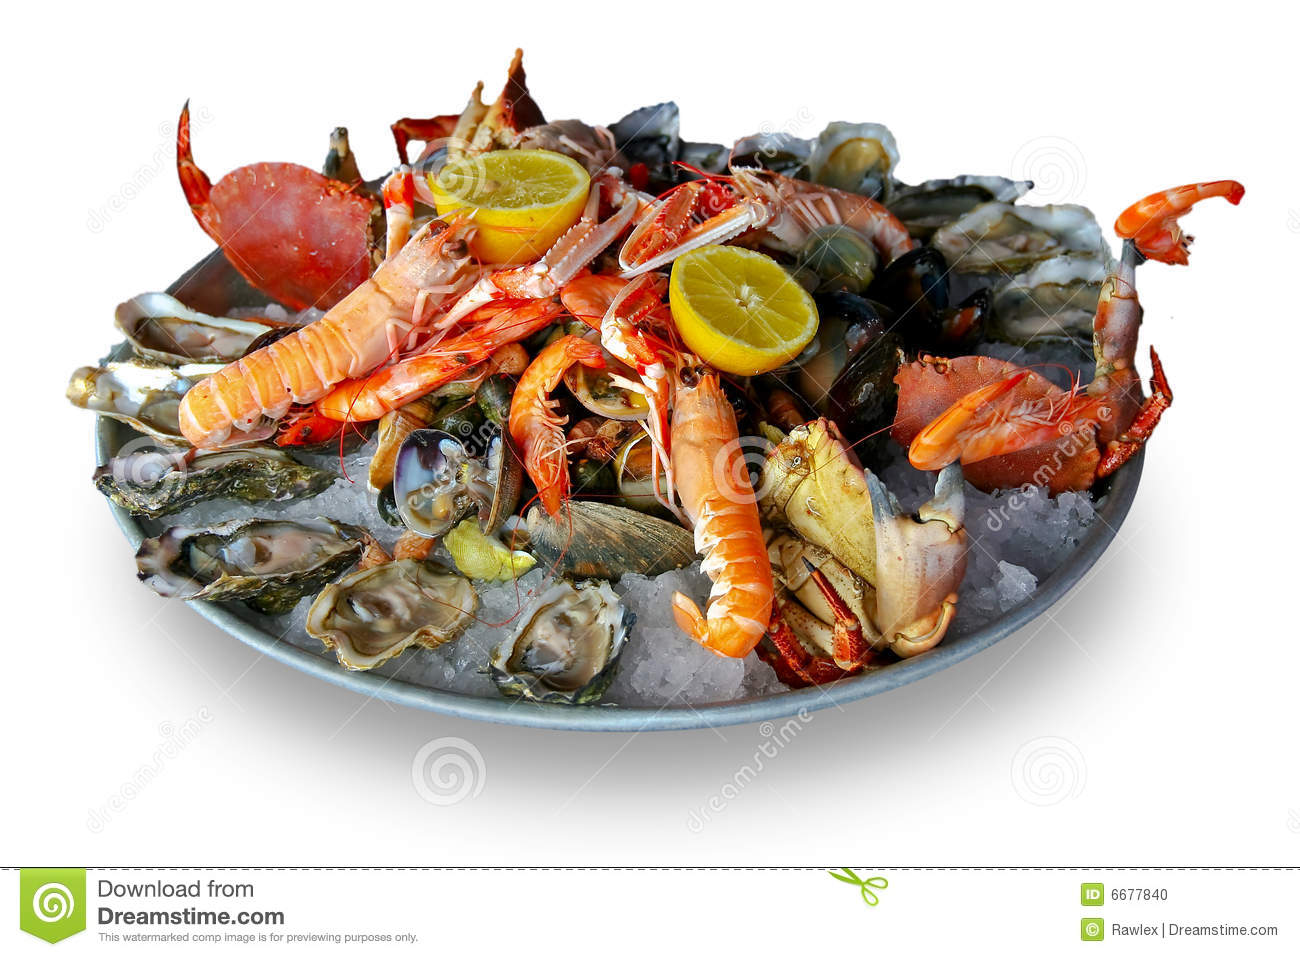 Metal platter with large selection of different kind of seafood.